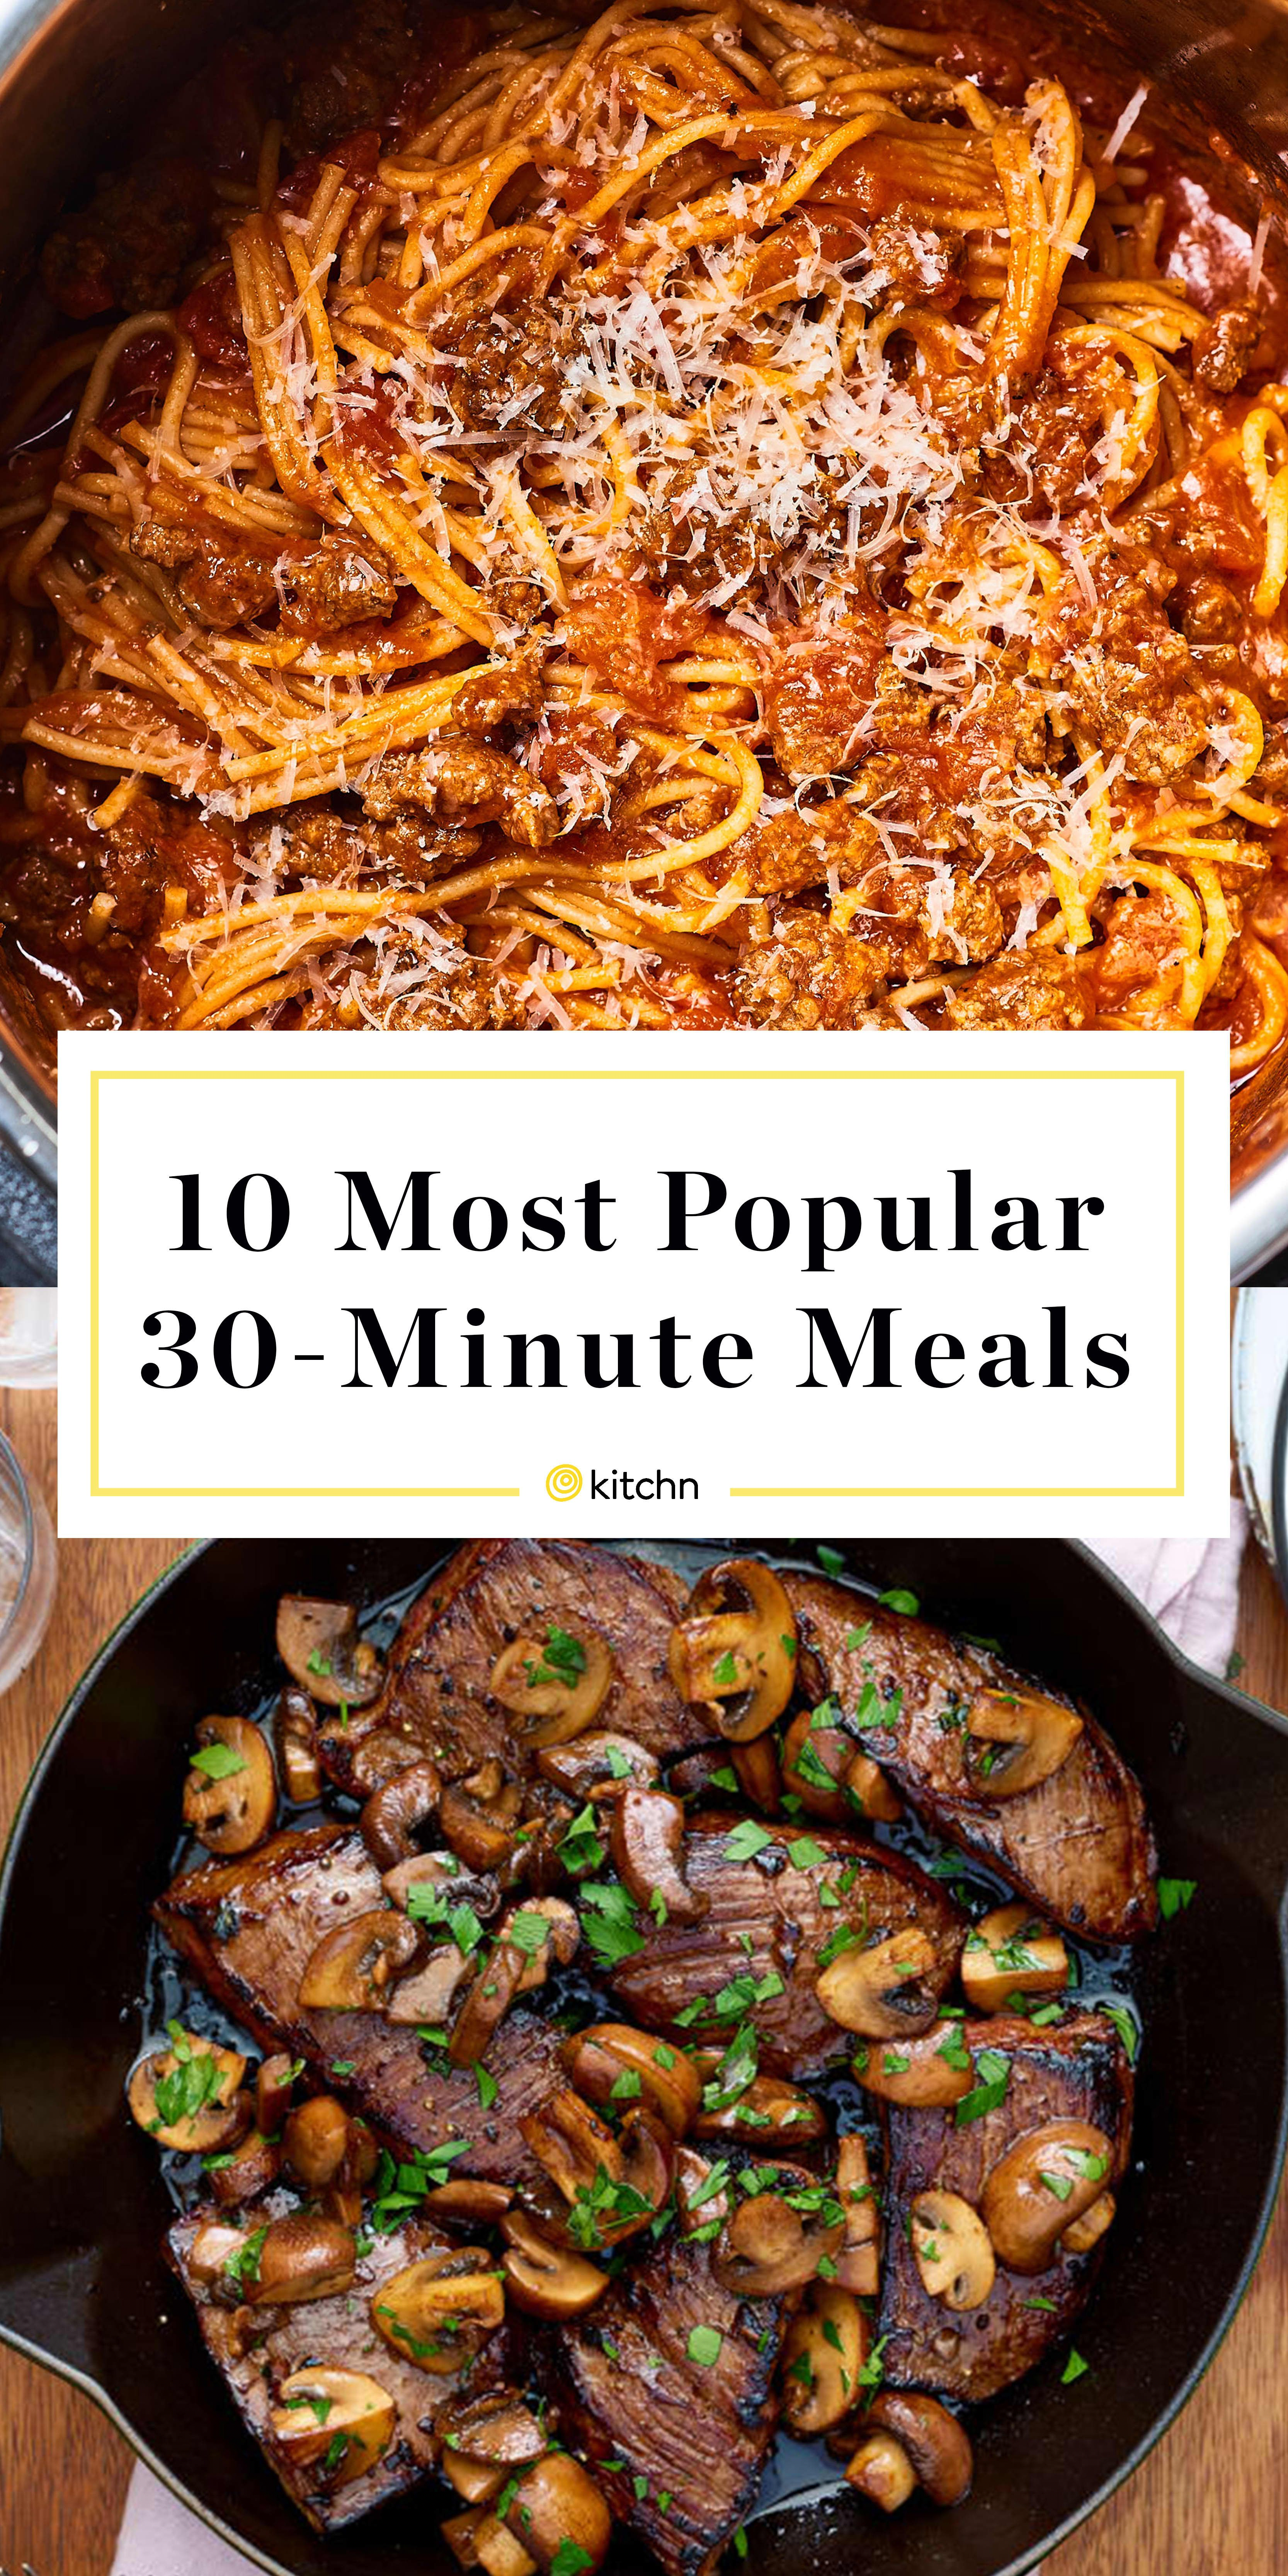 Our Most Popular 30-Minute Meals of the Year images